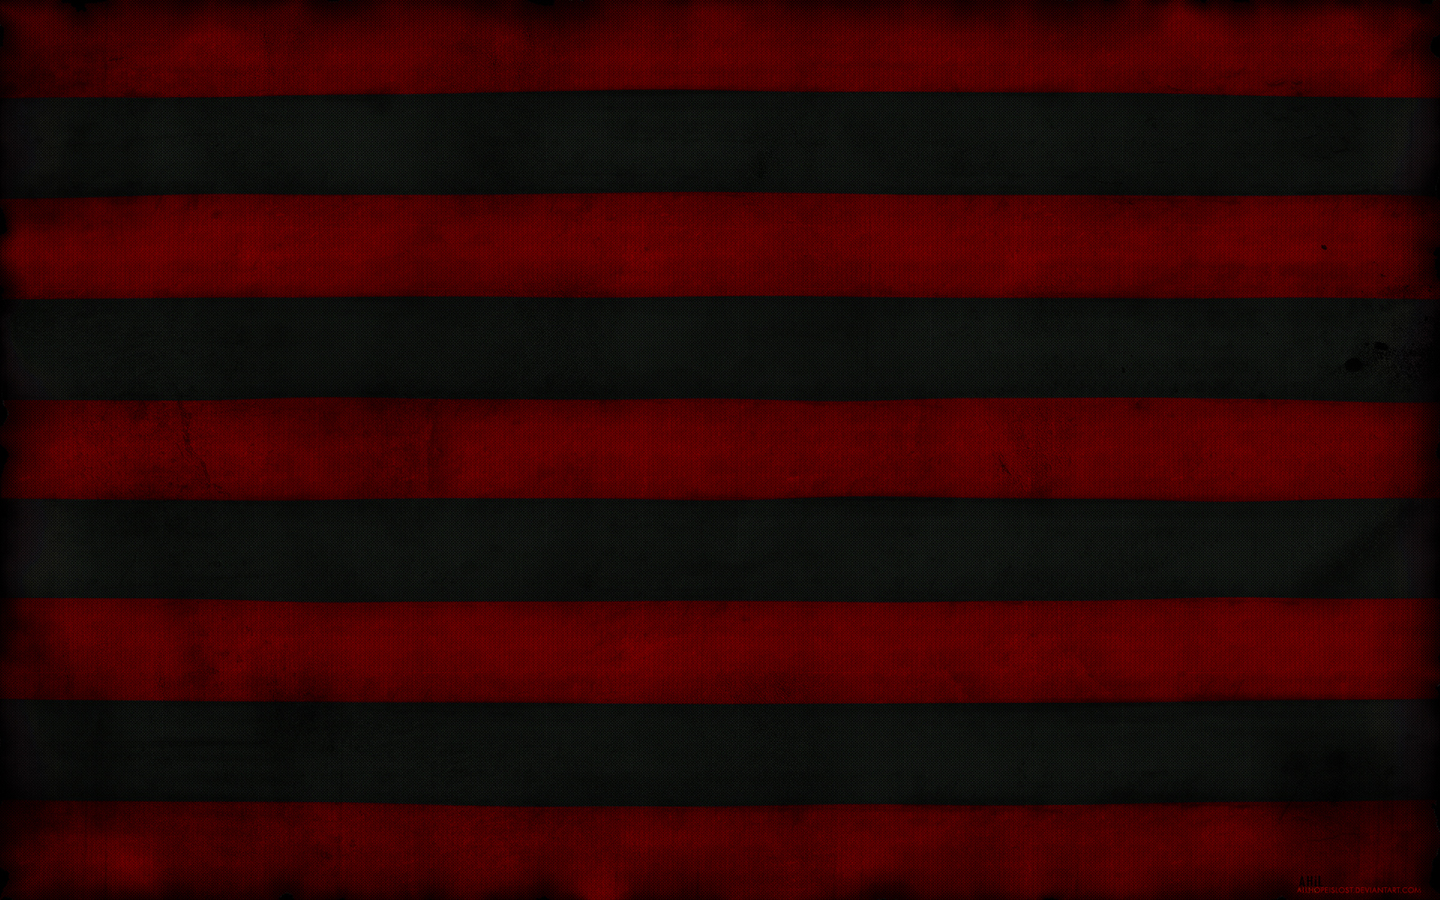 Photo Collection Freddy Krueger Minimalist Wallpaper